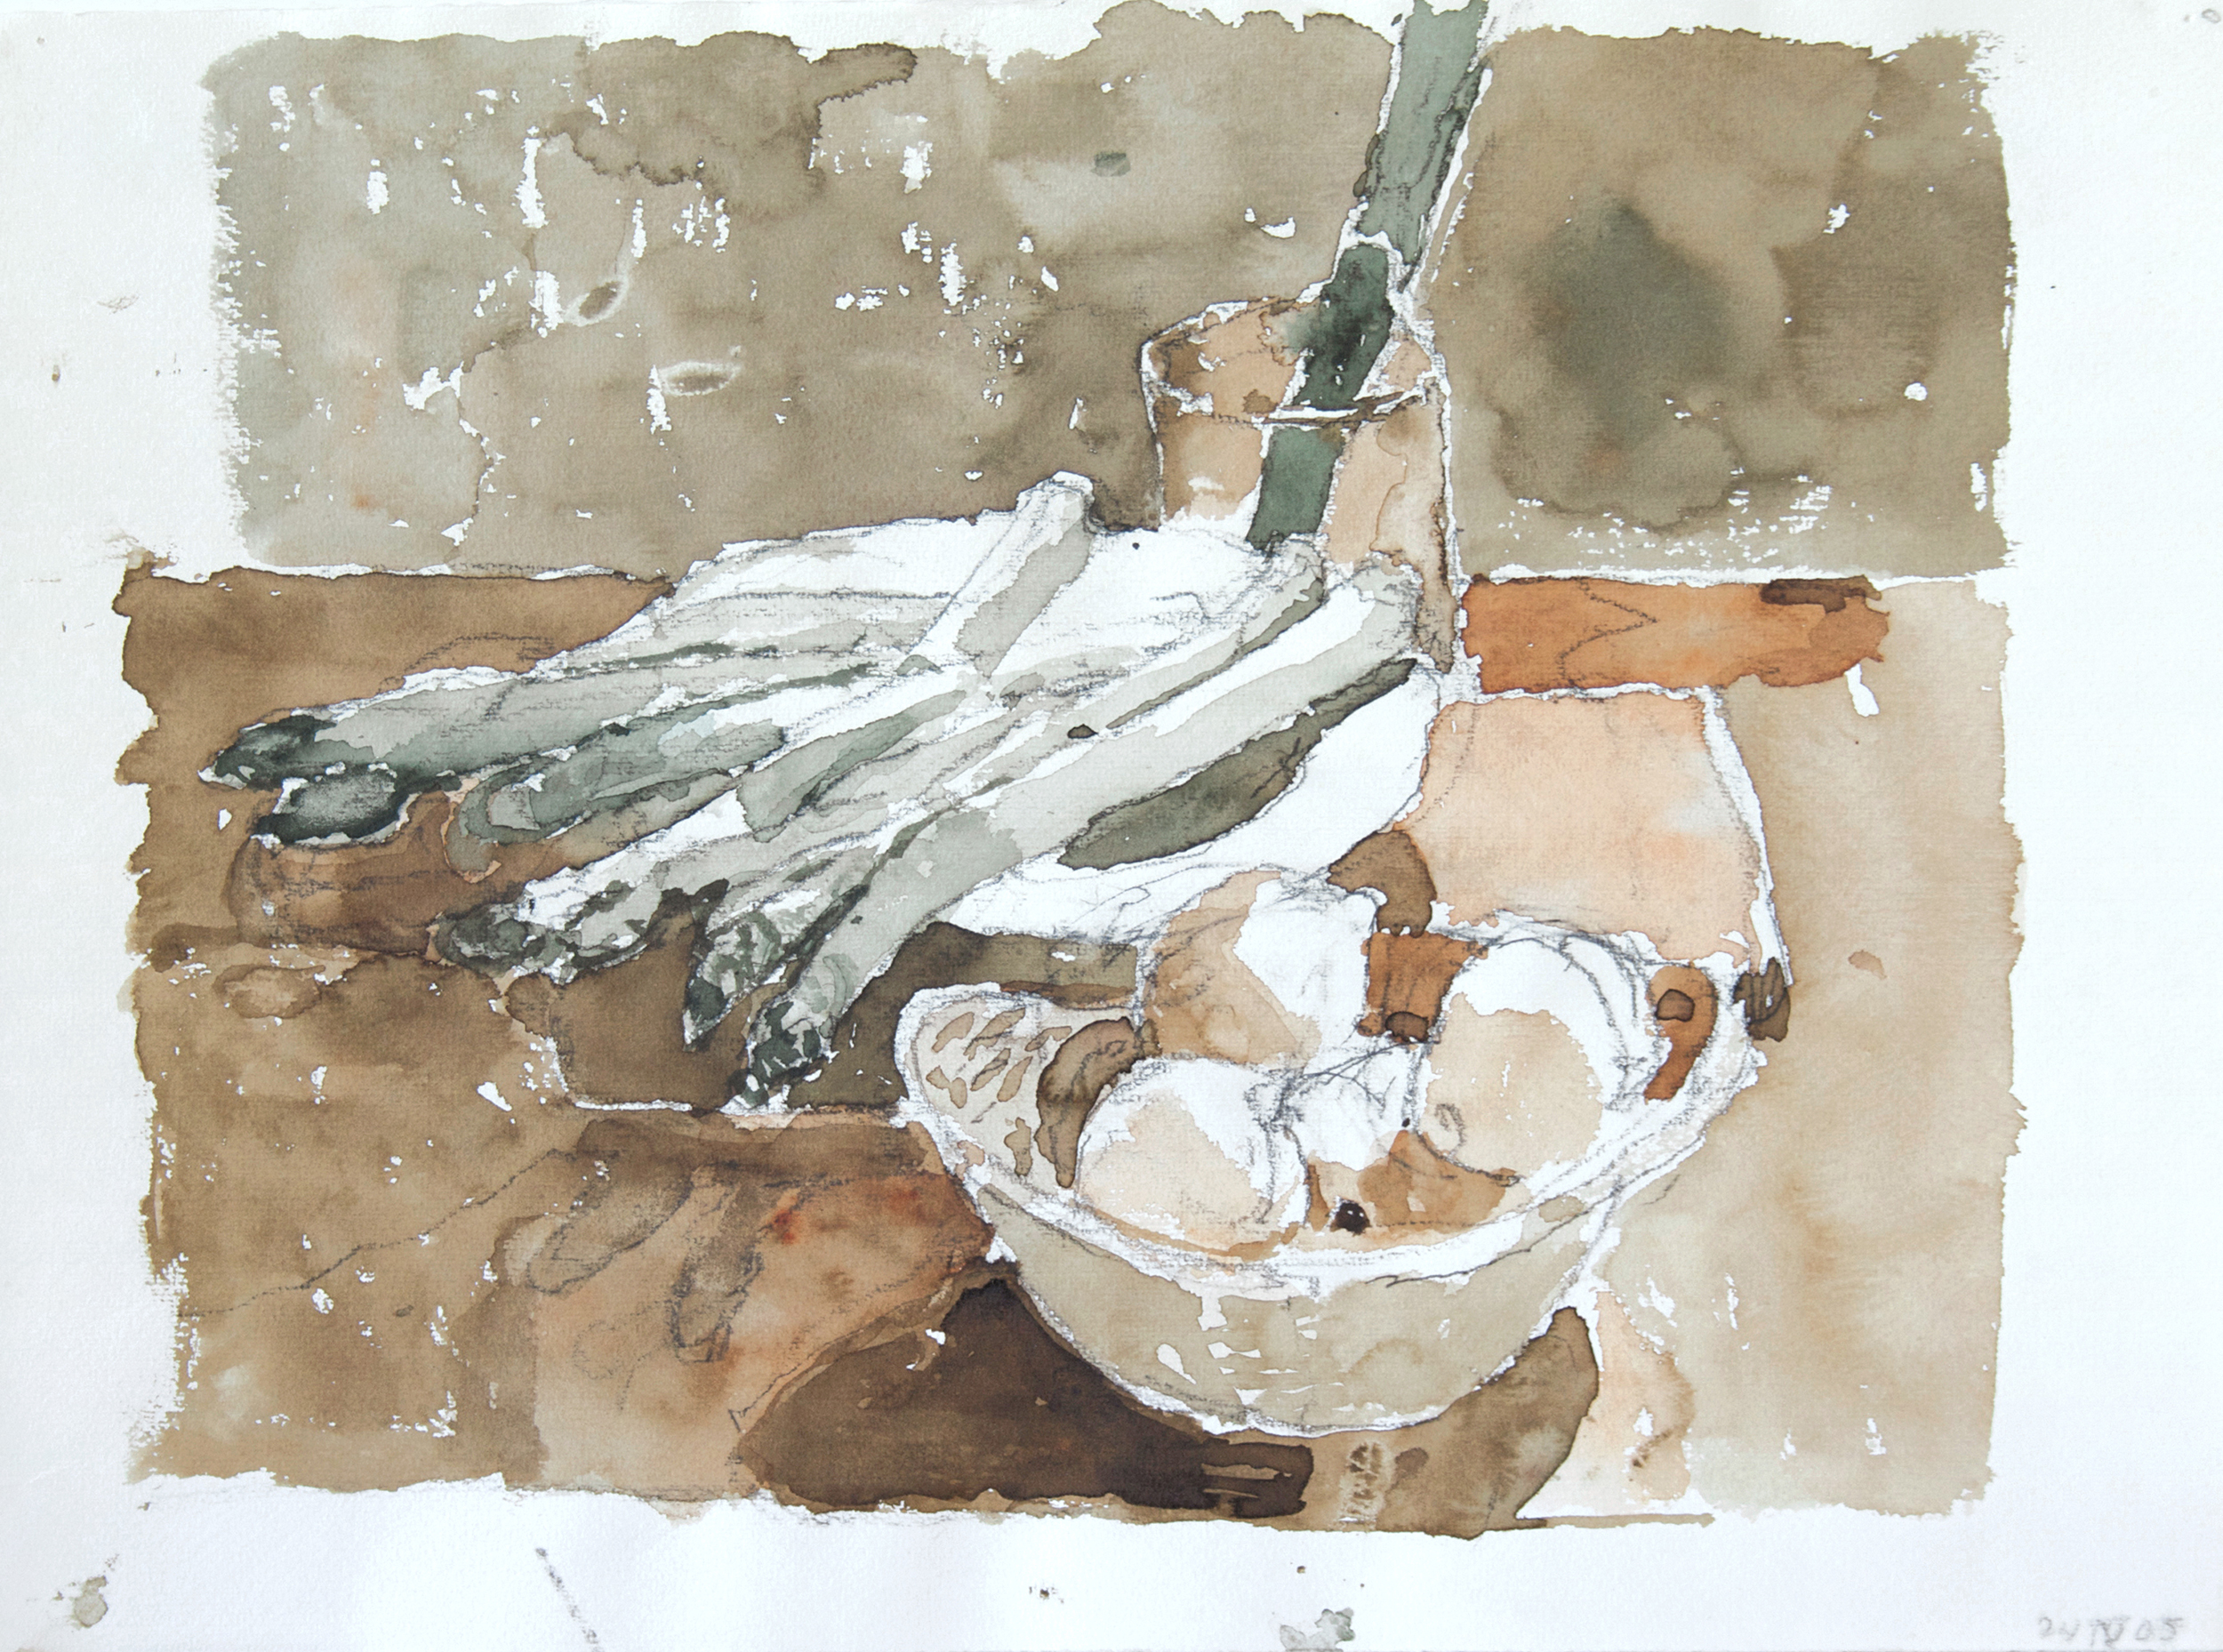 2005_Still_Life_with_Asparagus_Watercolour_and_pencil_on_paper_11x15inches_WPF395.jpg